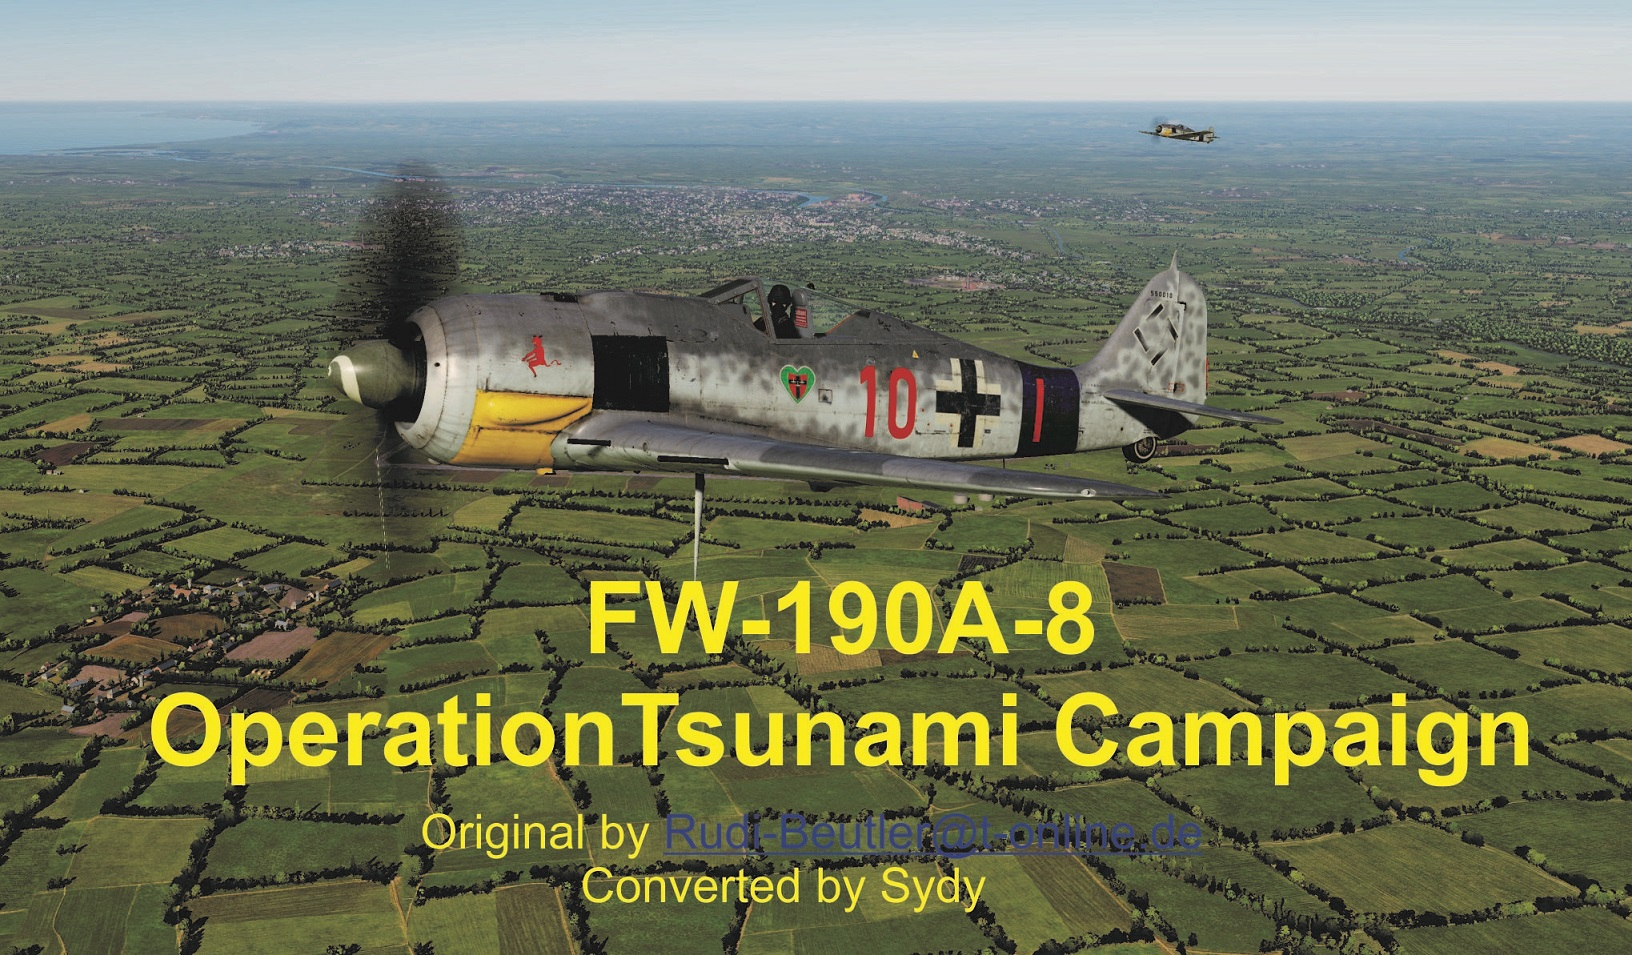 Fw-190 A-8 Operation Tsunami